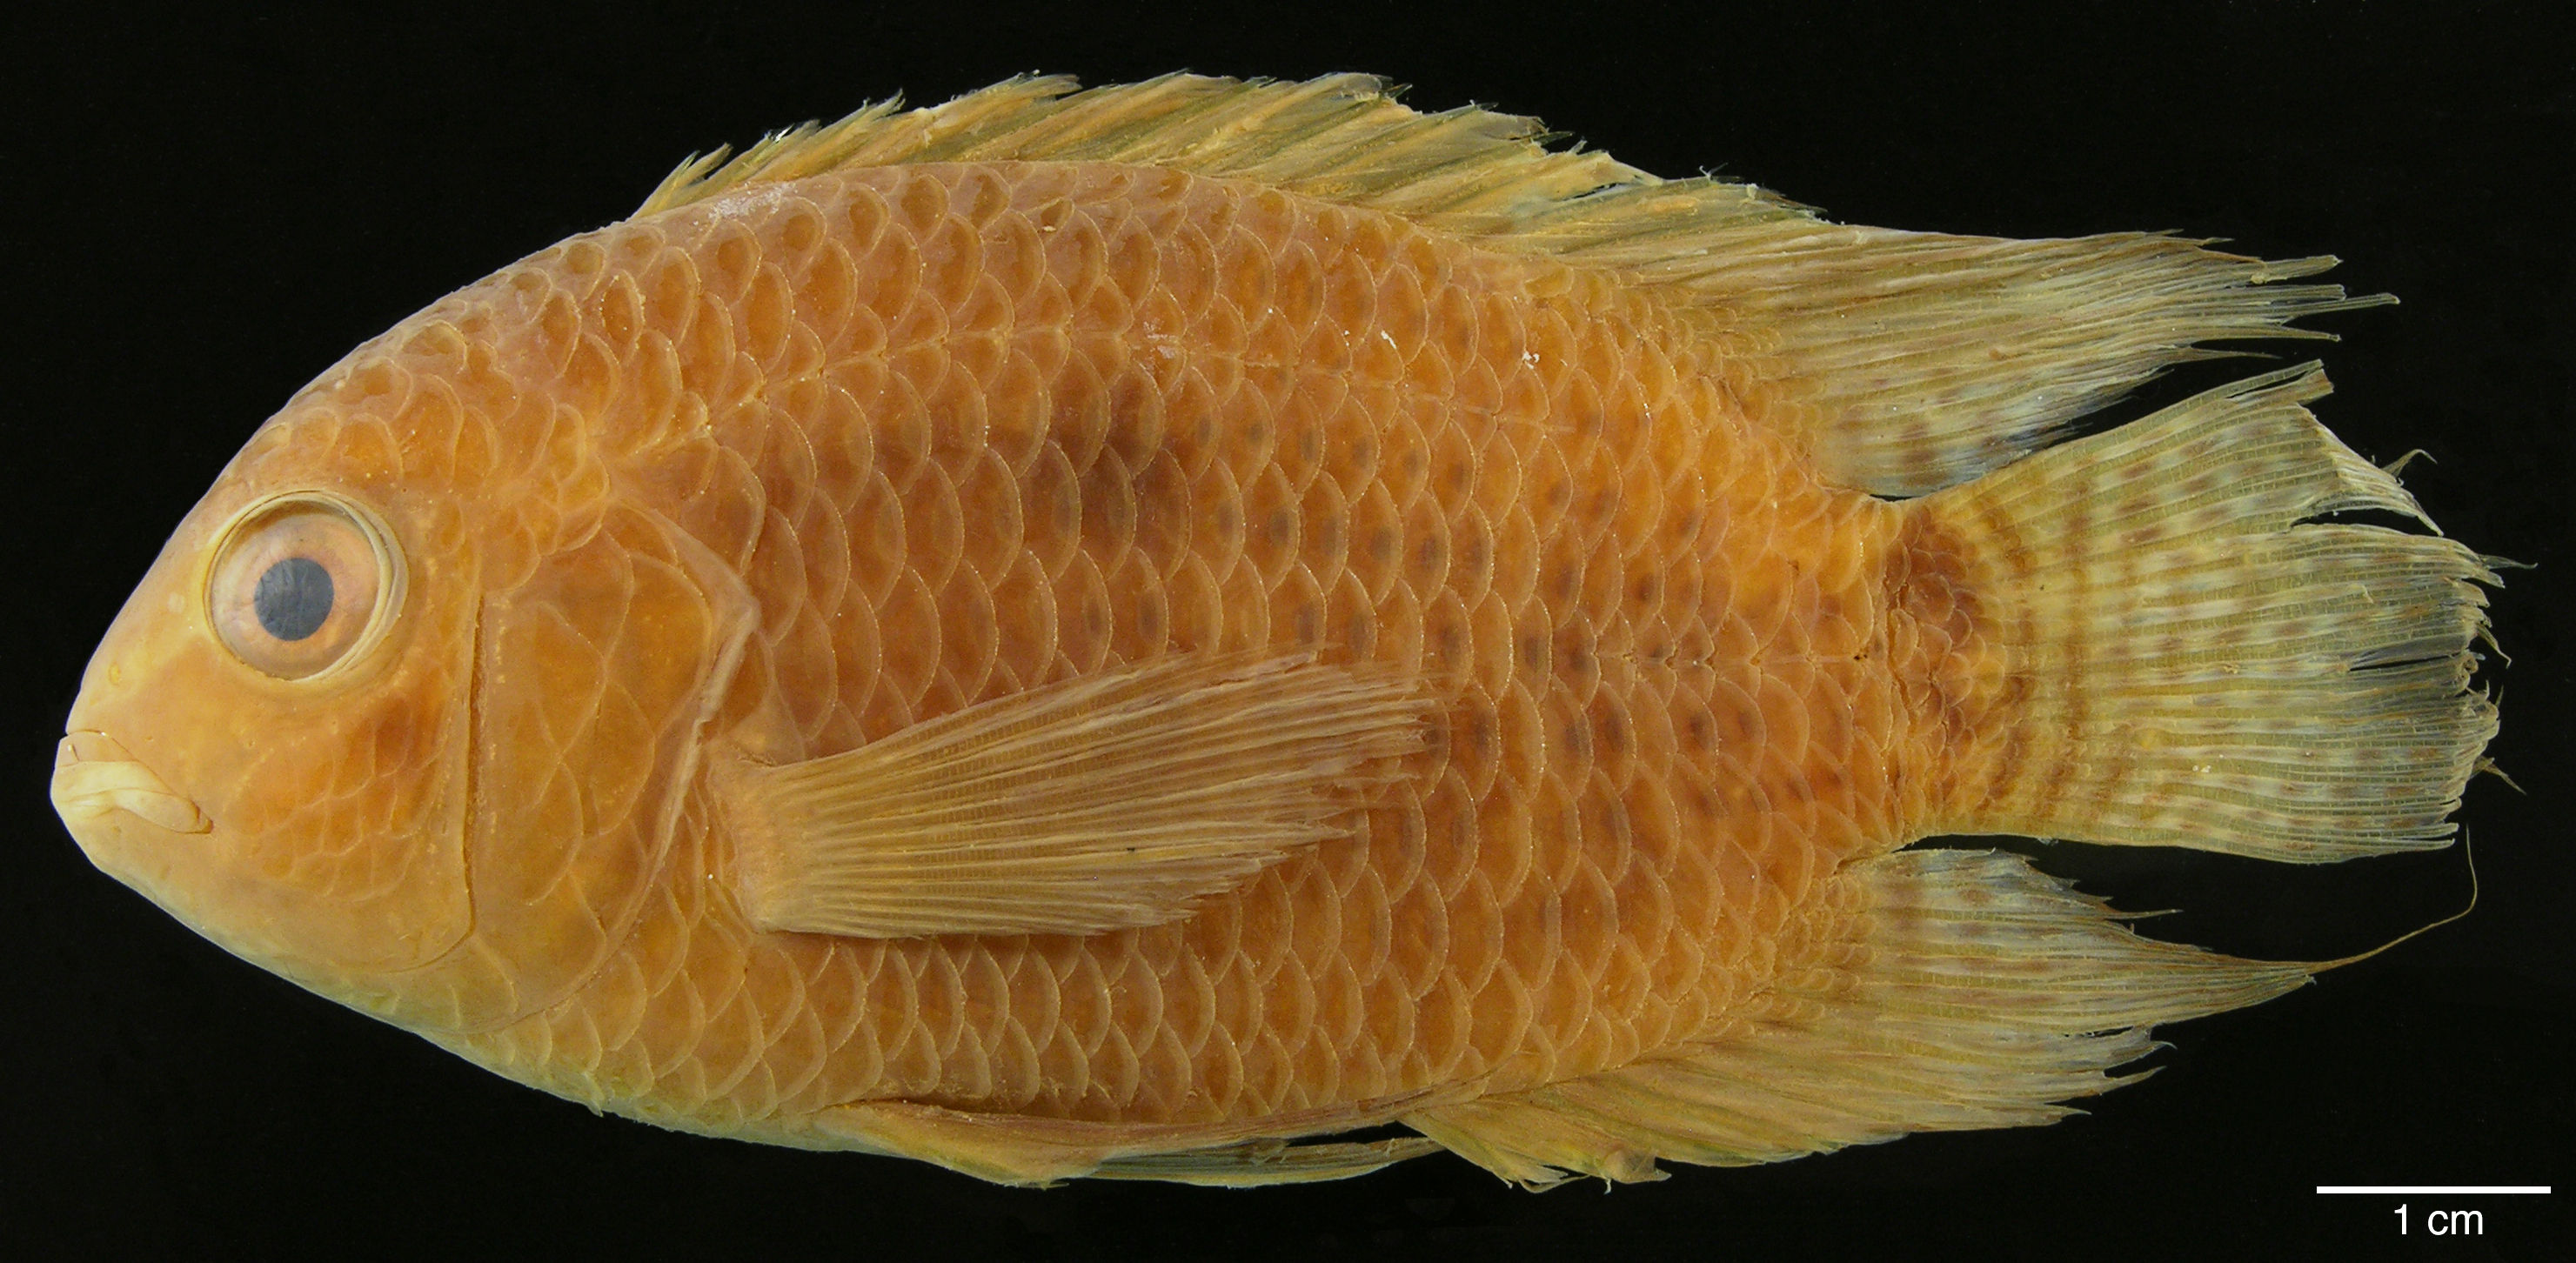 Paratípo de <em>Cichlasoma orinocense</em>, IAvH-P-10561_Lateral, 82.2 mm SL (scale bar = 1 cm). Photograph by M. H. Sabaj Pérez